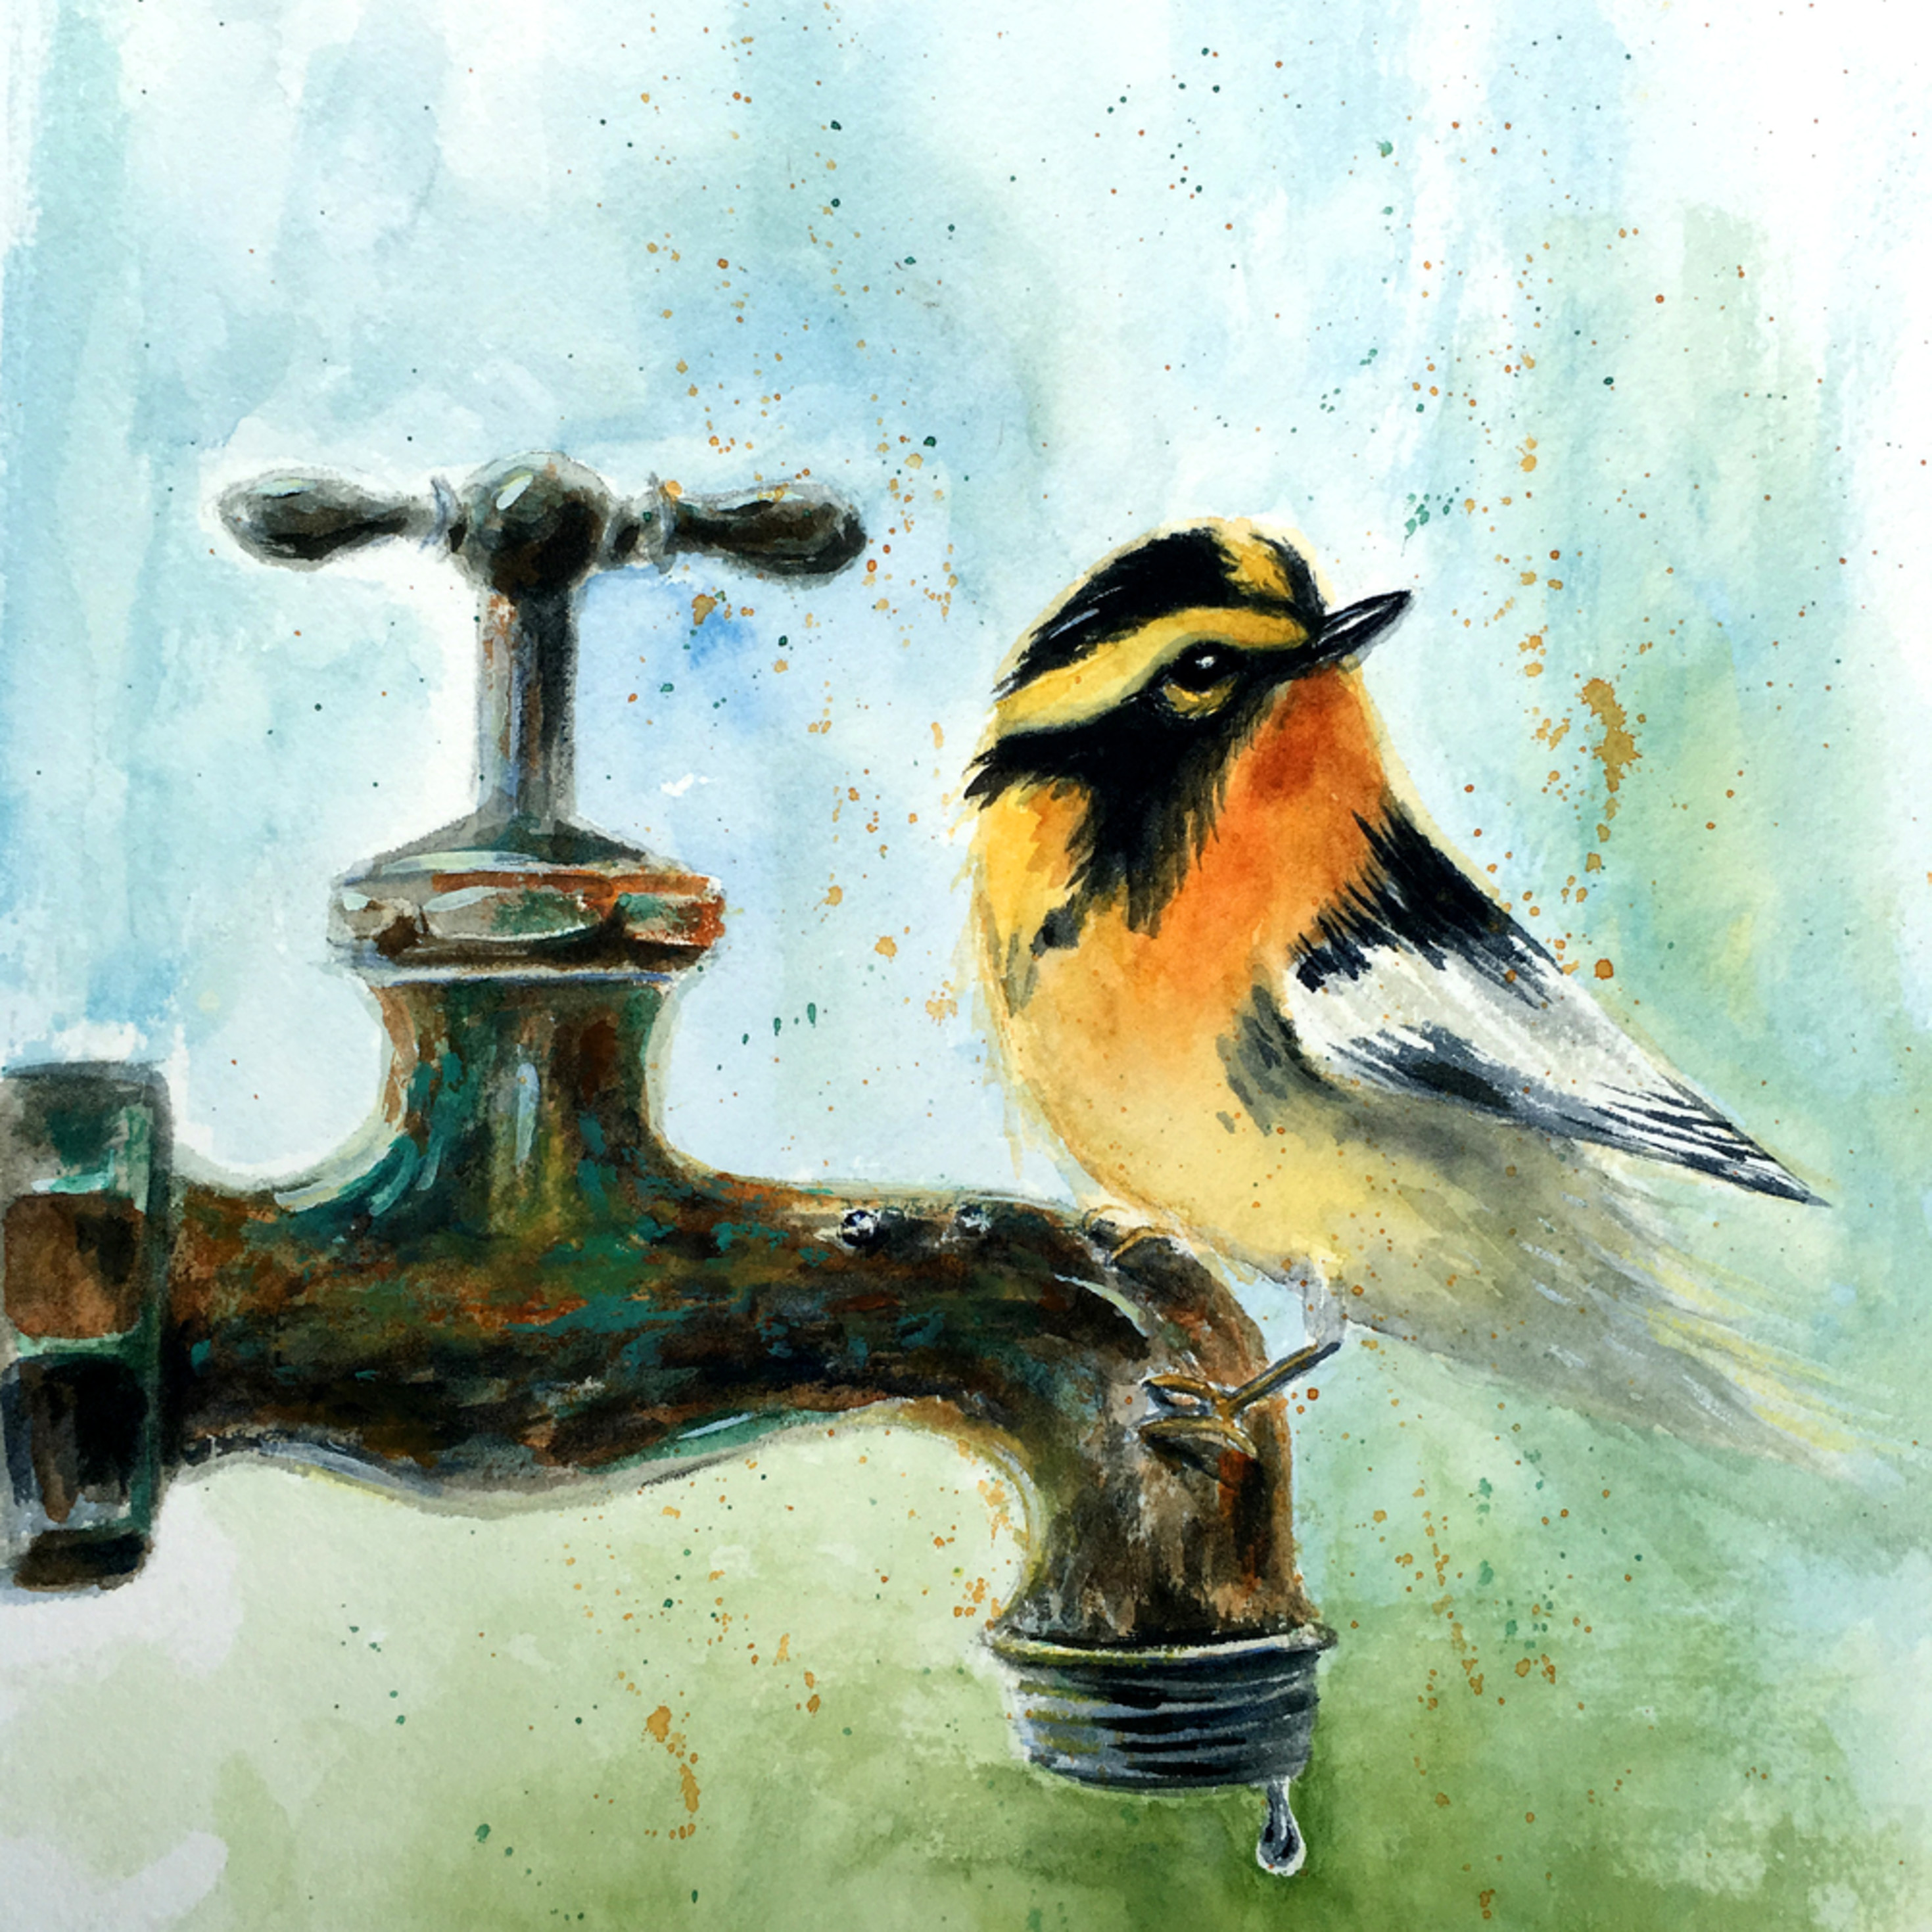 Blackburnian warbler on pipe fcgq1m